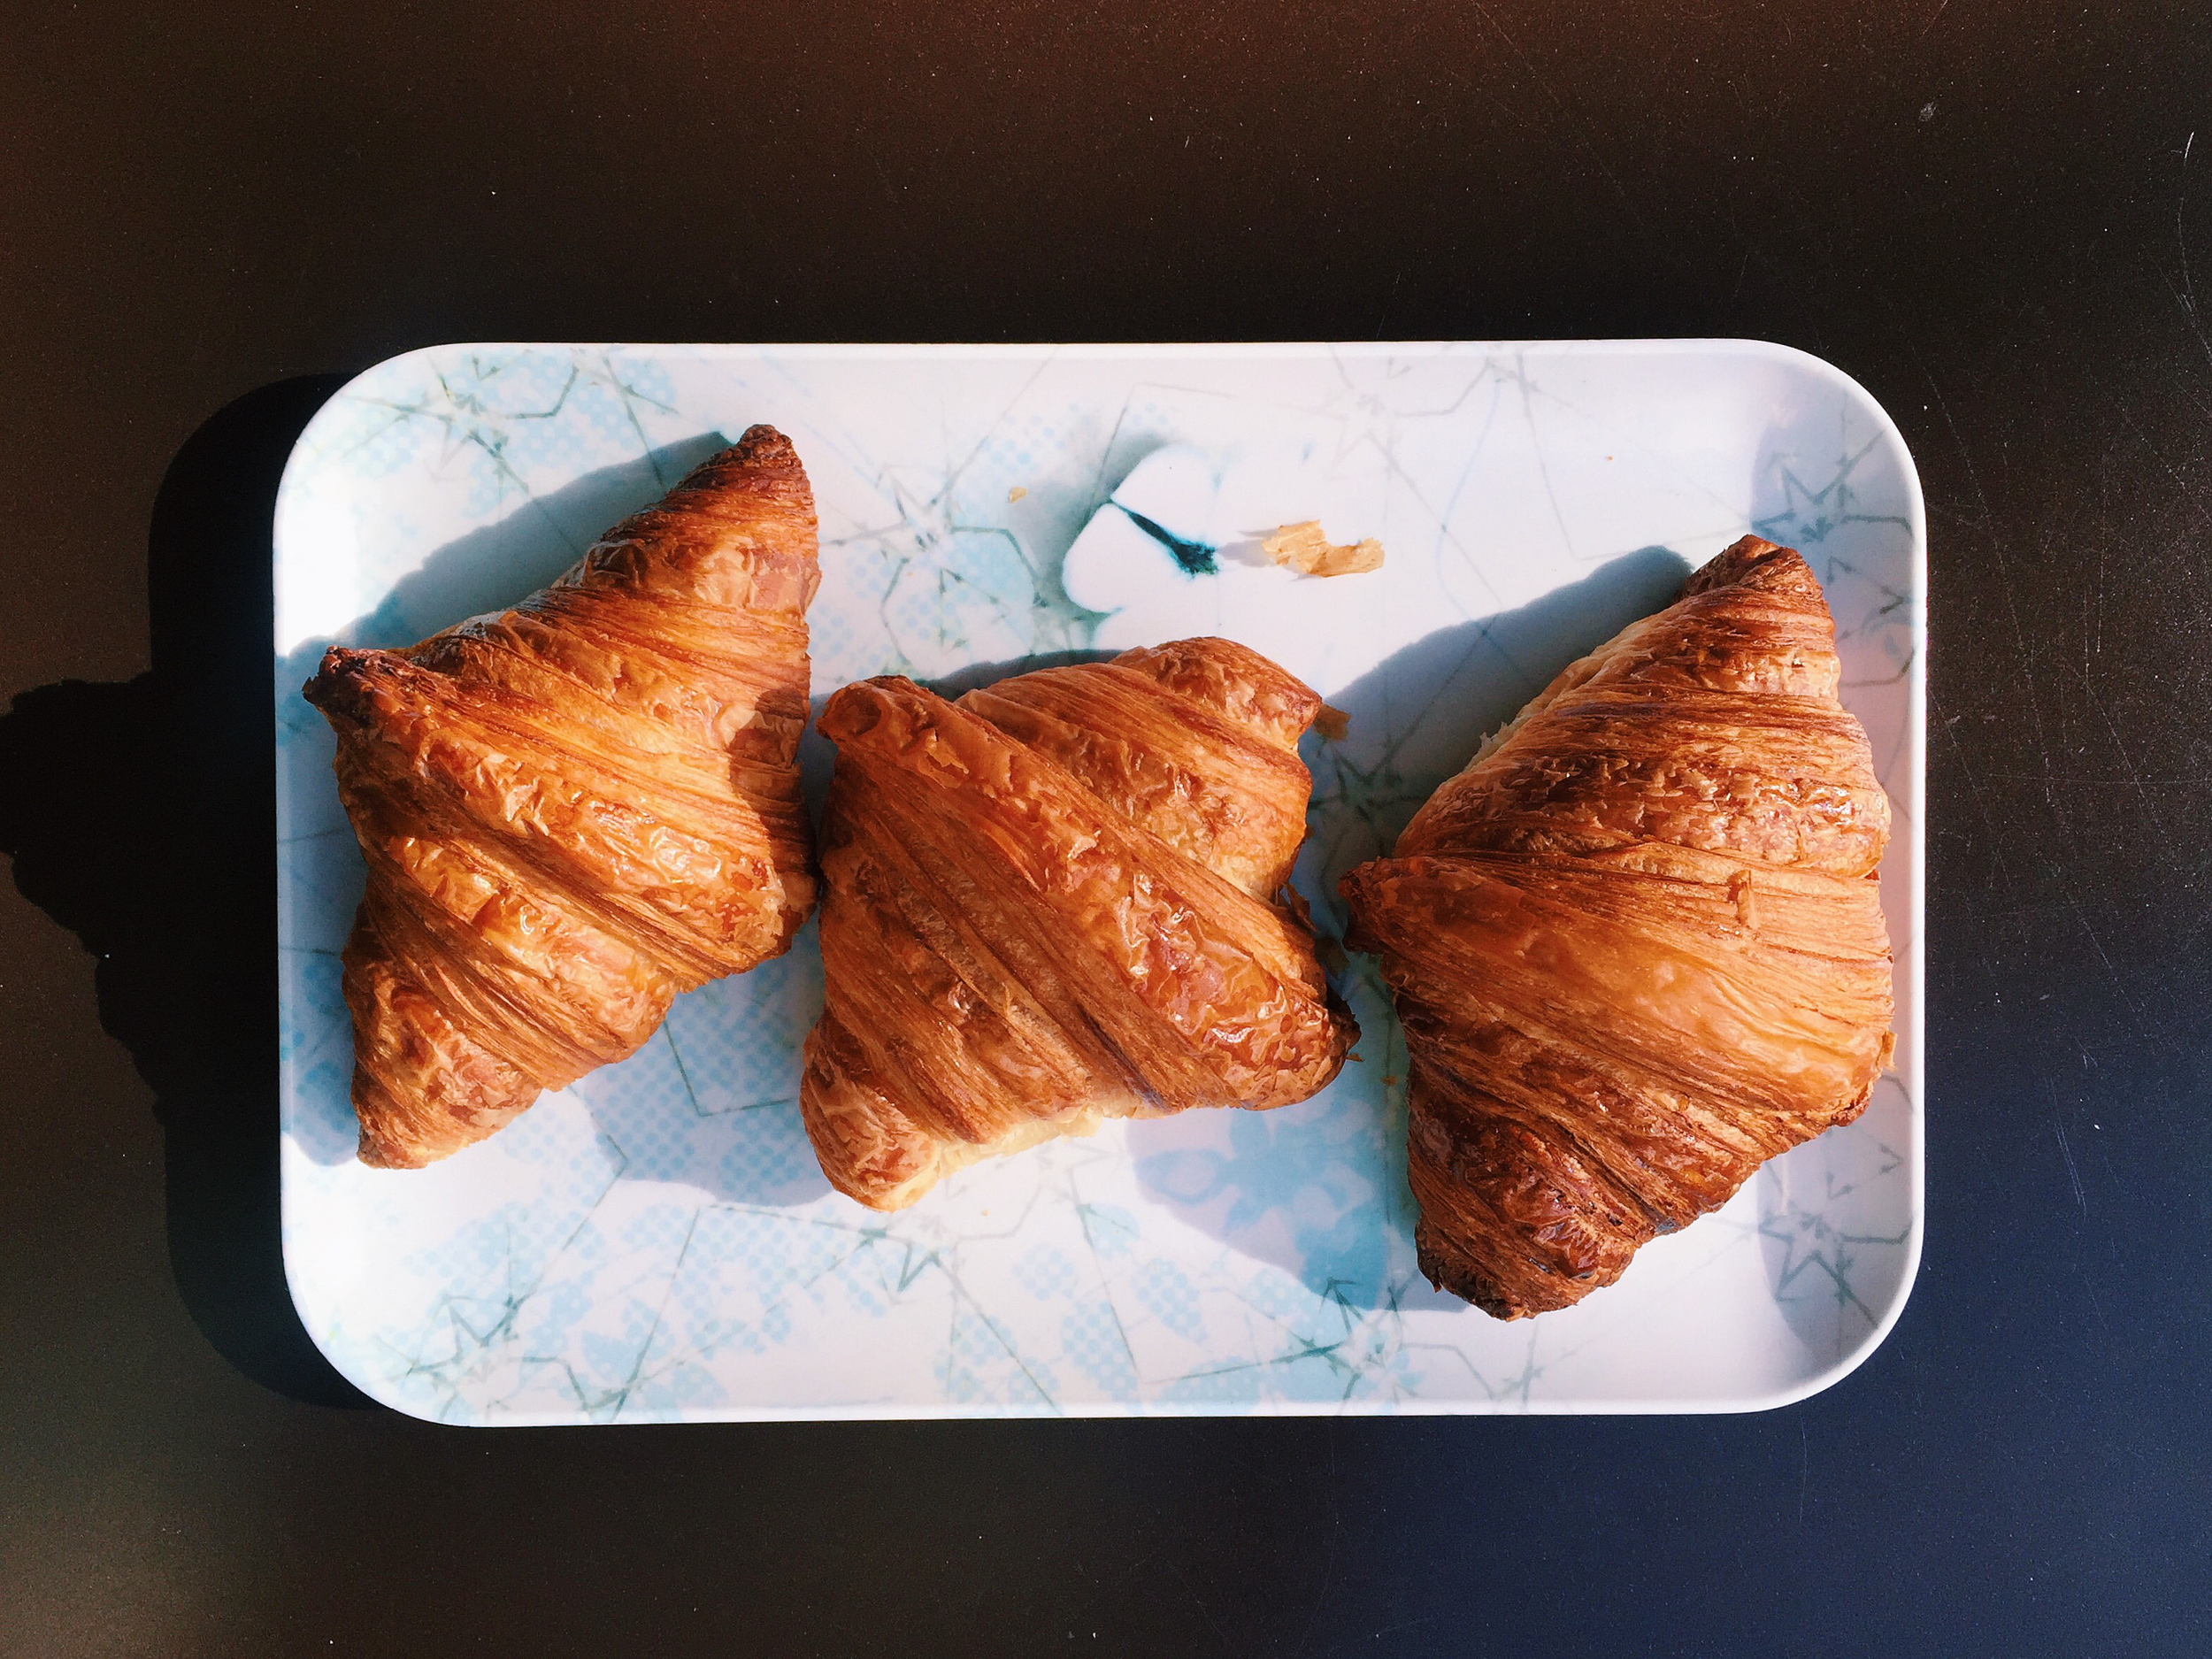 Croissants from Ble Sucre